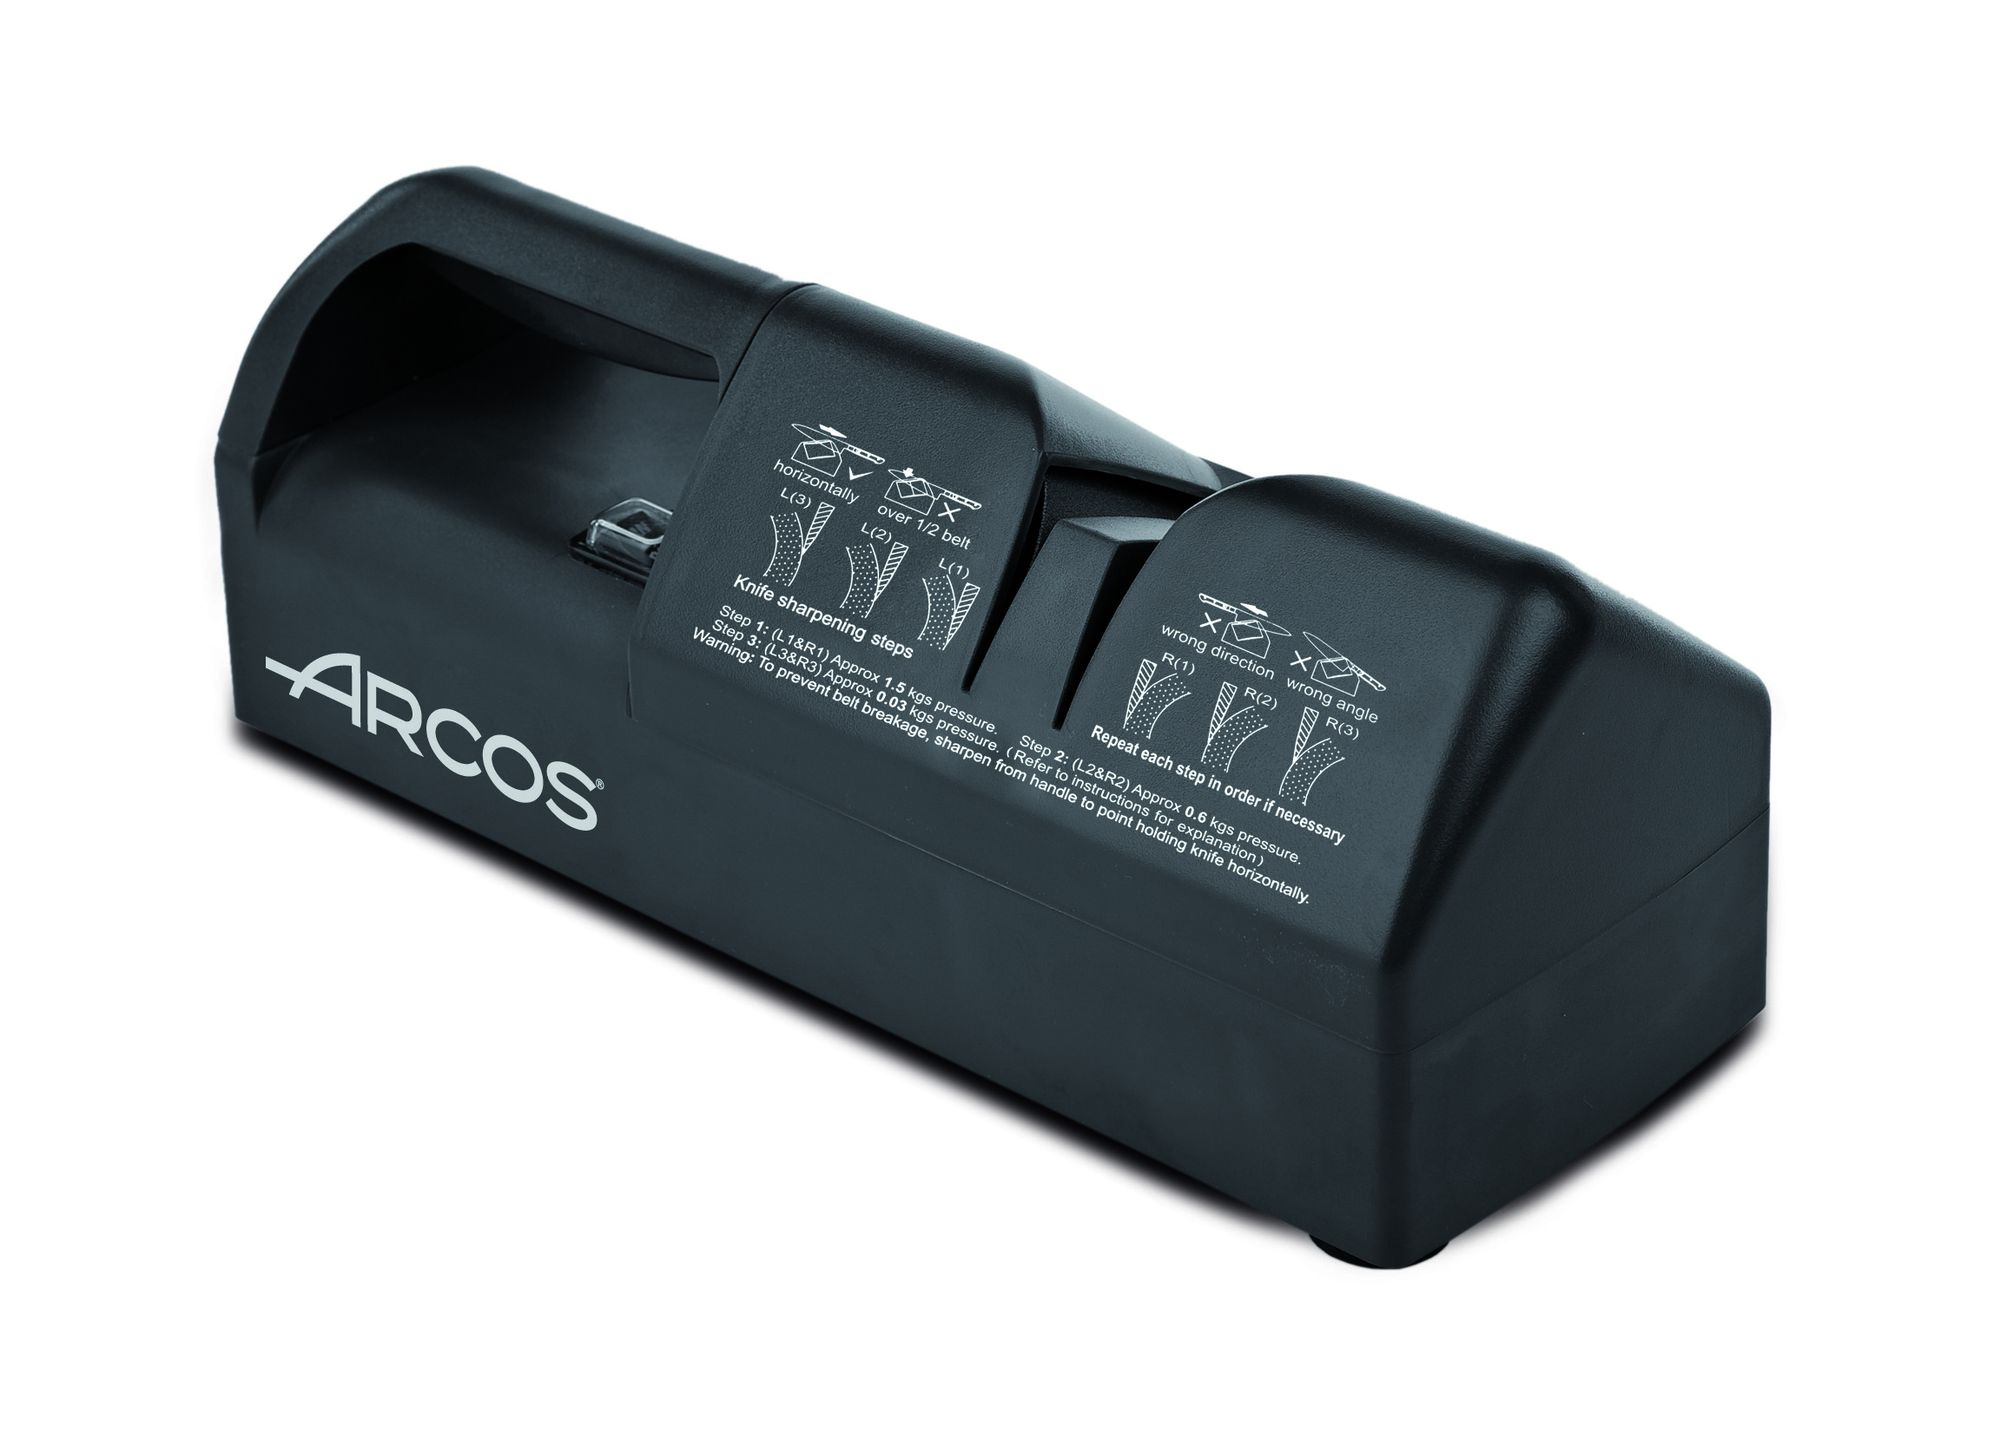 Electric Knife Sharpener Arcos ref.: 610500